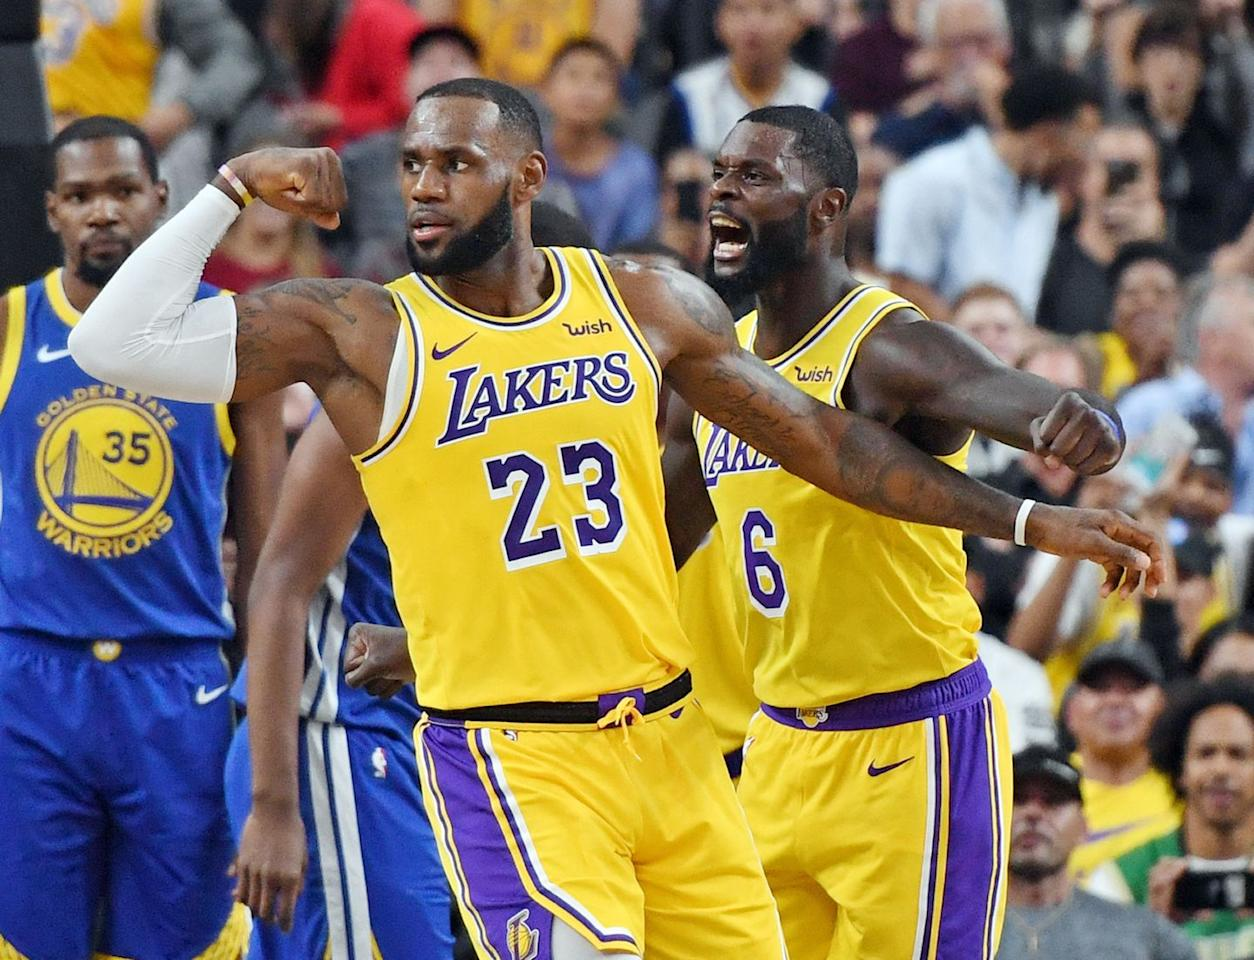 """<p>King James has a four-year contract with the Lakers that's worth $153 million, but he makes the bulk of his money through endorsements—according to <em><a href=""""https://www.forbes.com/profile/lebron-james/?list=celebrities#16c510ba2398"""" target=""""_blank"""">Forbes</a></em>, he has the NBA's top endorsement portfolio. </p><p>James also has his own production company and his own media company. Additionally, he and his partners own 14 Blaze Pizza franchises in Chicago, and seven in Florida. </p>"""